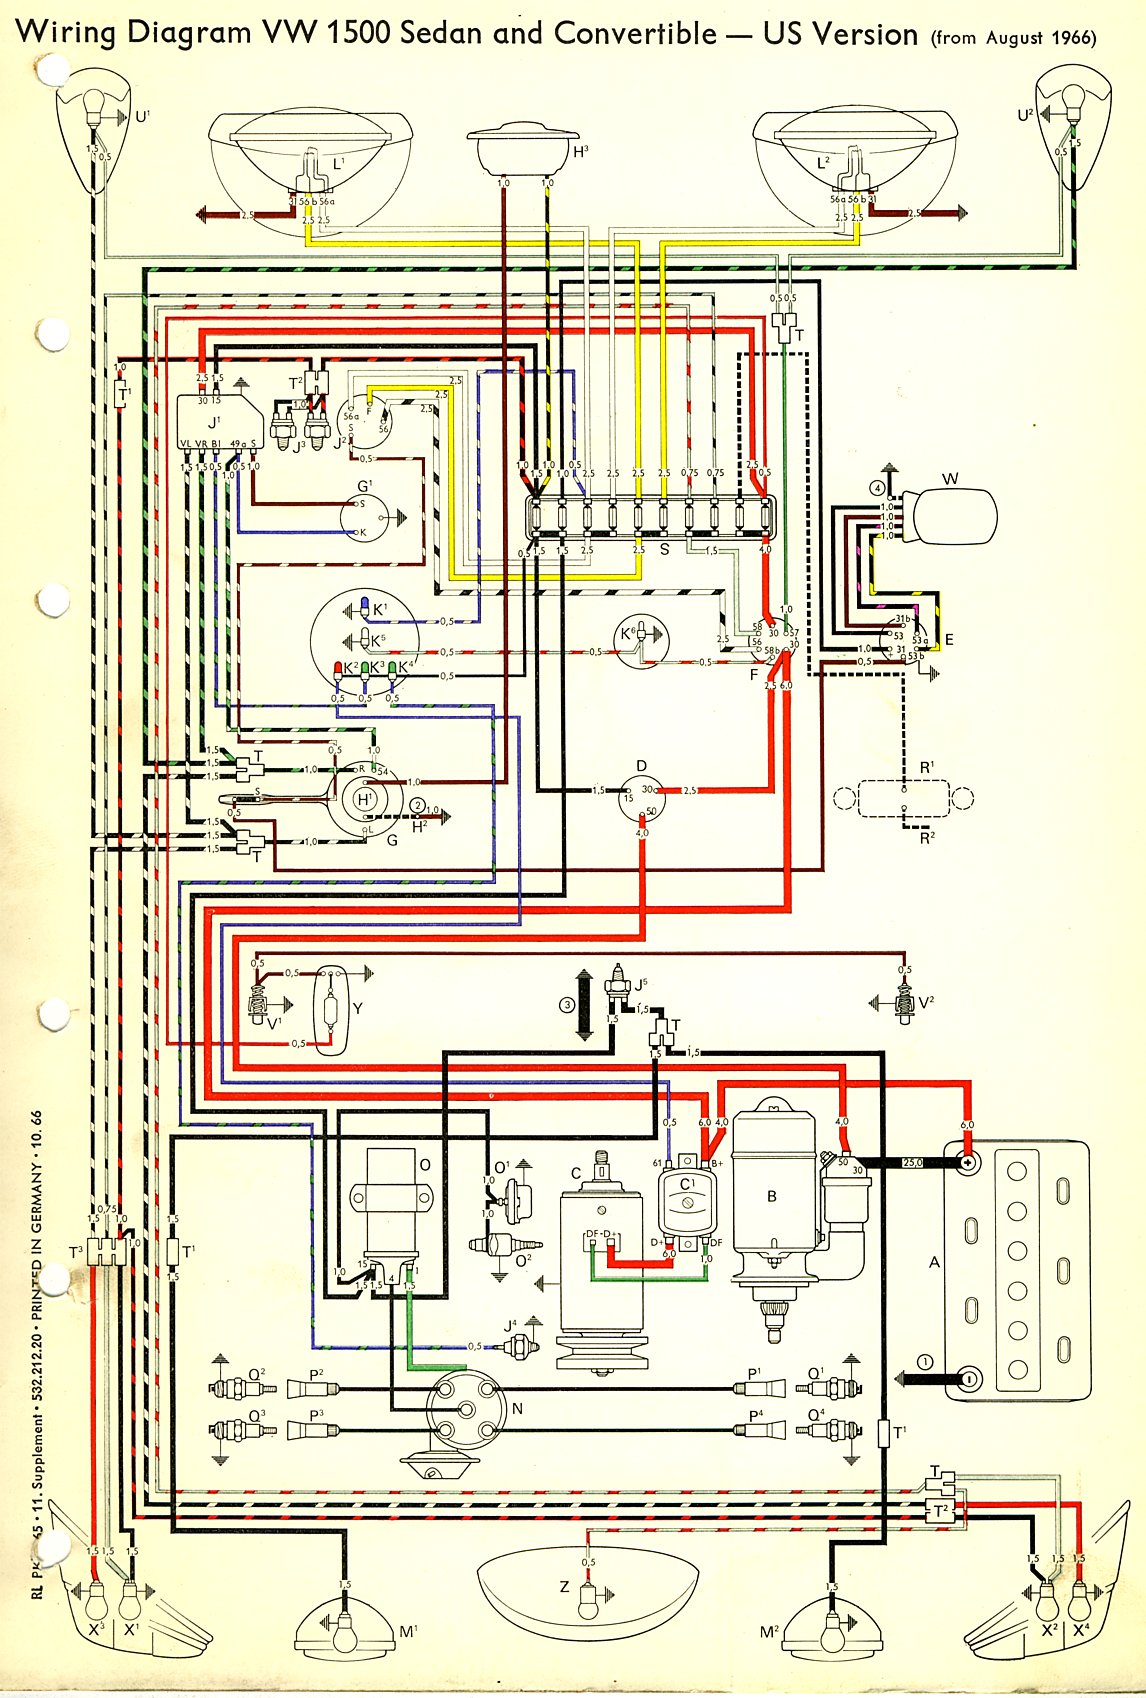 1959 Vw Beetle Wiring Diagram Wiper 1967 The Bug Rh 61vdub Blogspot Com Motor 1966